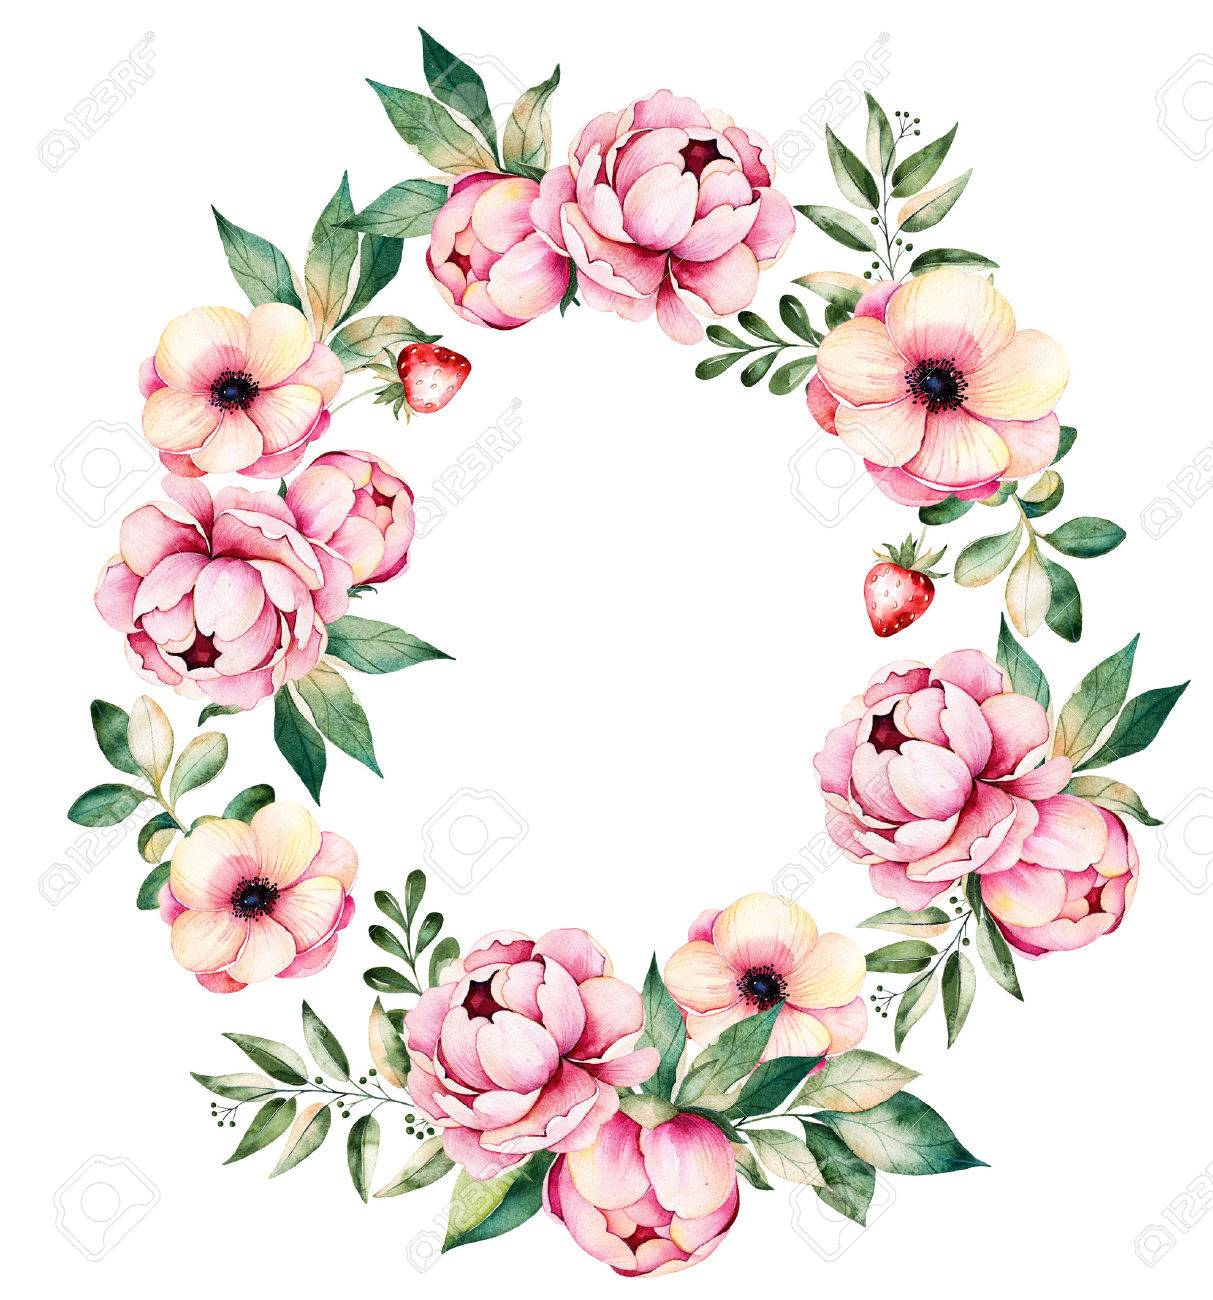 Colorful Floral Wreath With Peonies, Flowers, Leaves, Succulent ...